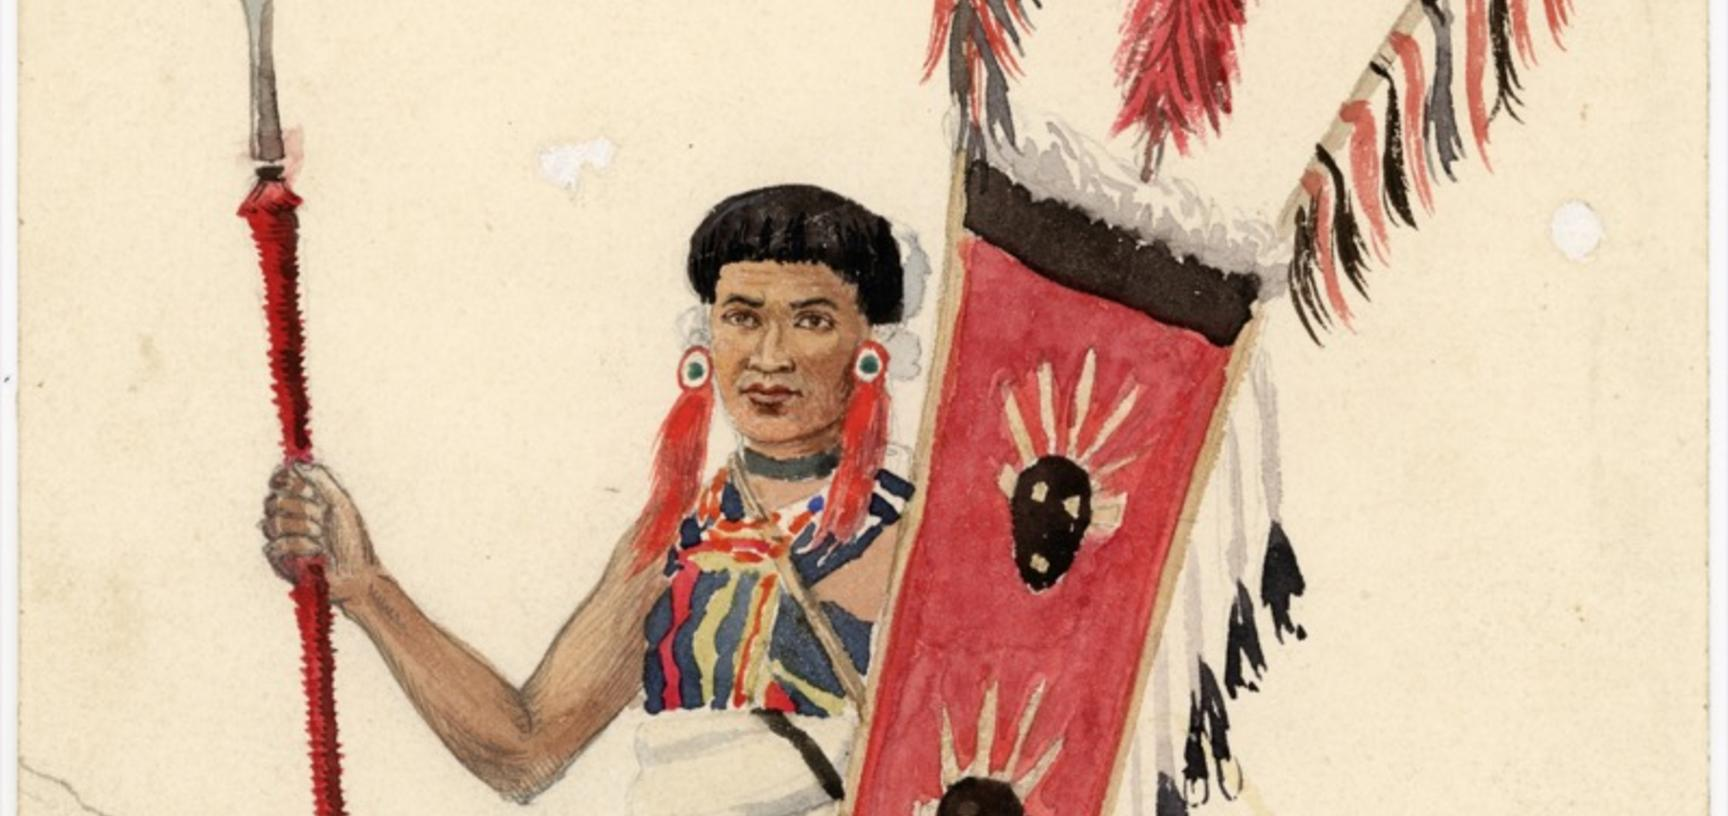 'Angami Naga' (handwritten caption). Portrait of an Angami Naga man named 'Dotsoll', depicted standing, holding two spears and a shield. Watercolour painting by Robert Gosset Woodthorpe. The original handwritten annotation by Woodthorpe indicates that the